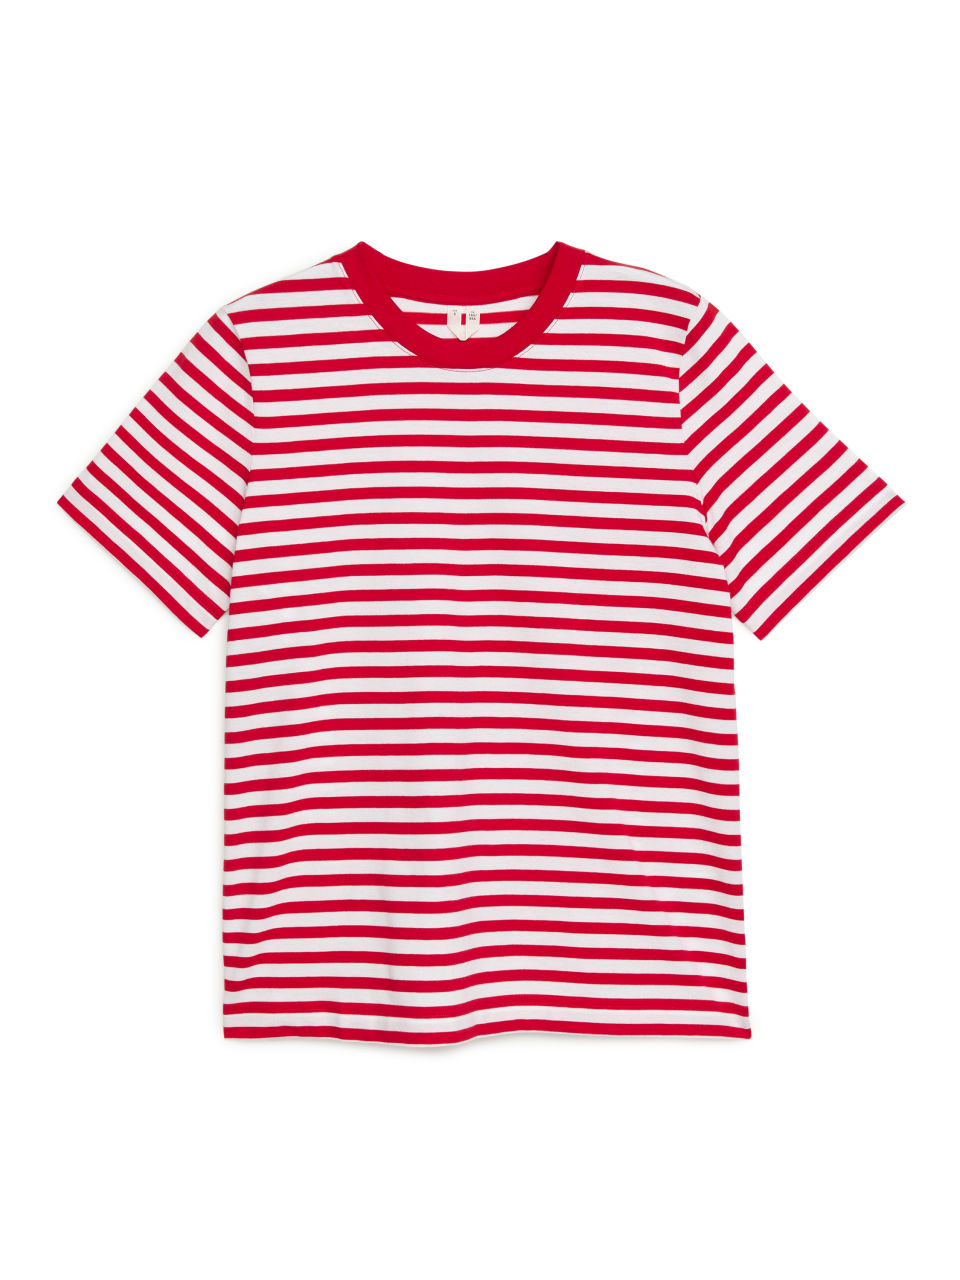 Crew-Neck Striped T-shirt - Red